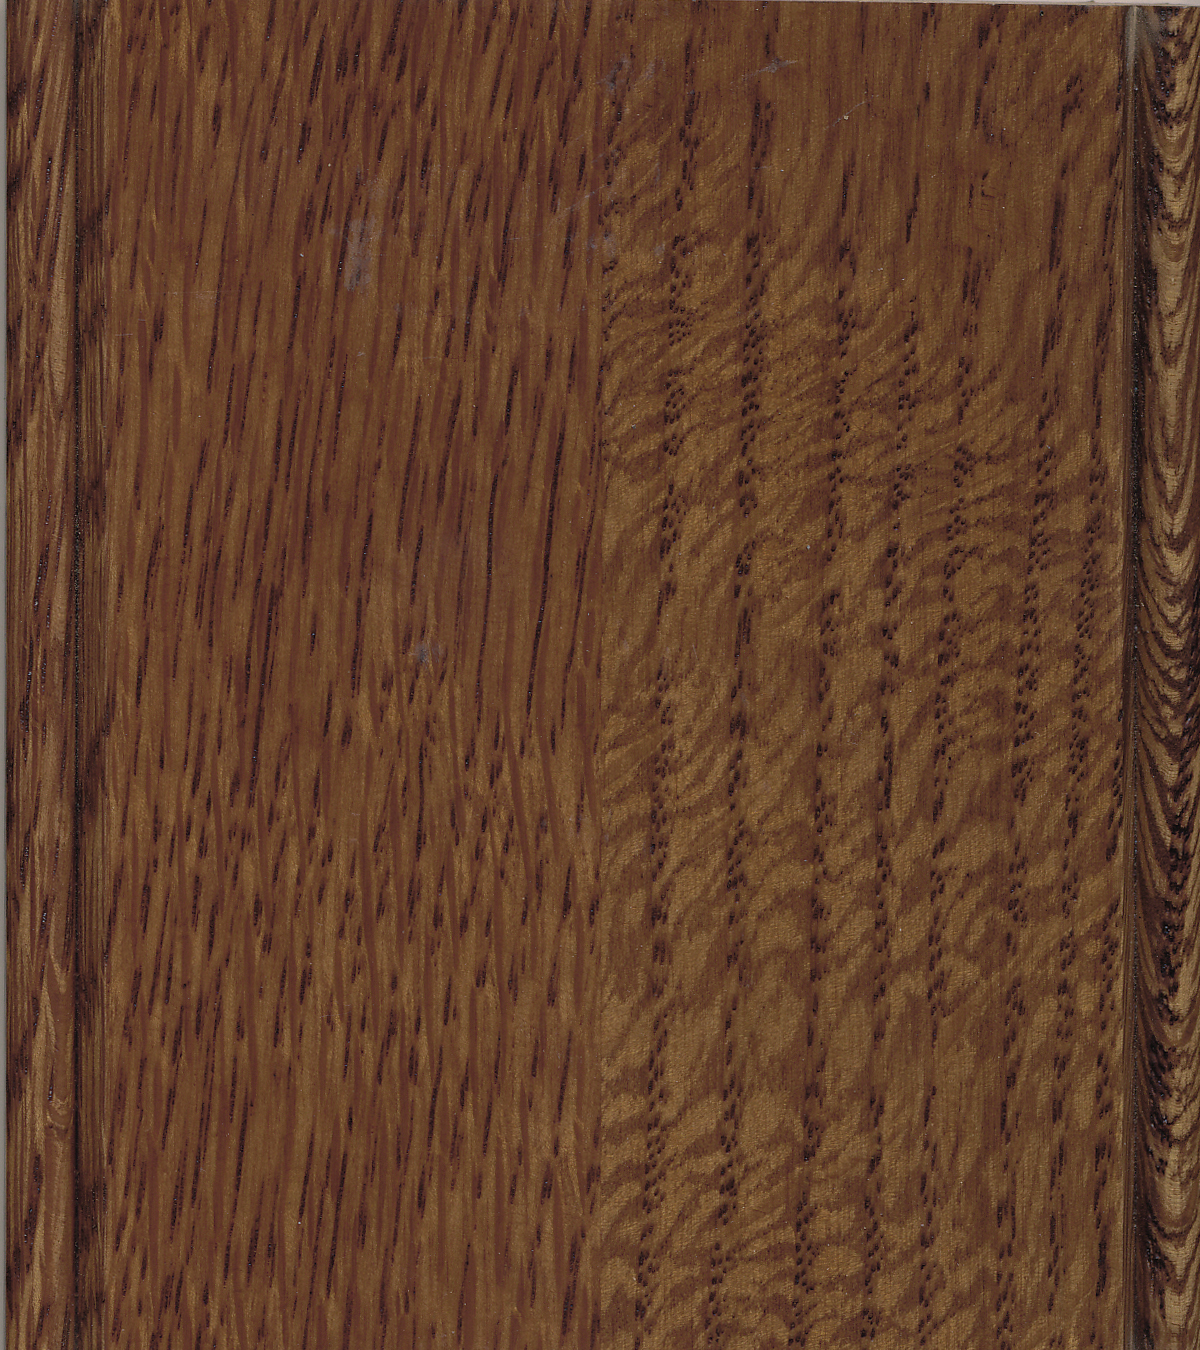 Quarter Sawn White Oak: Tavern Qtr Sawn